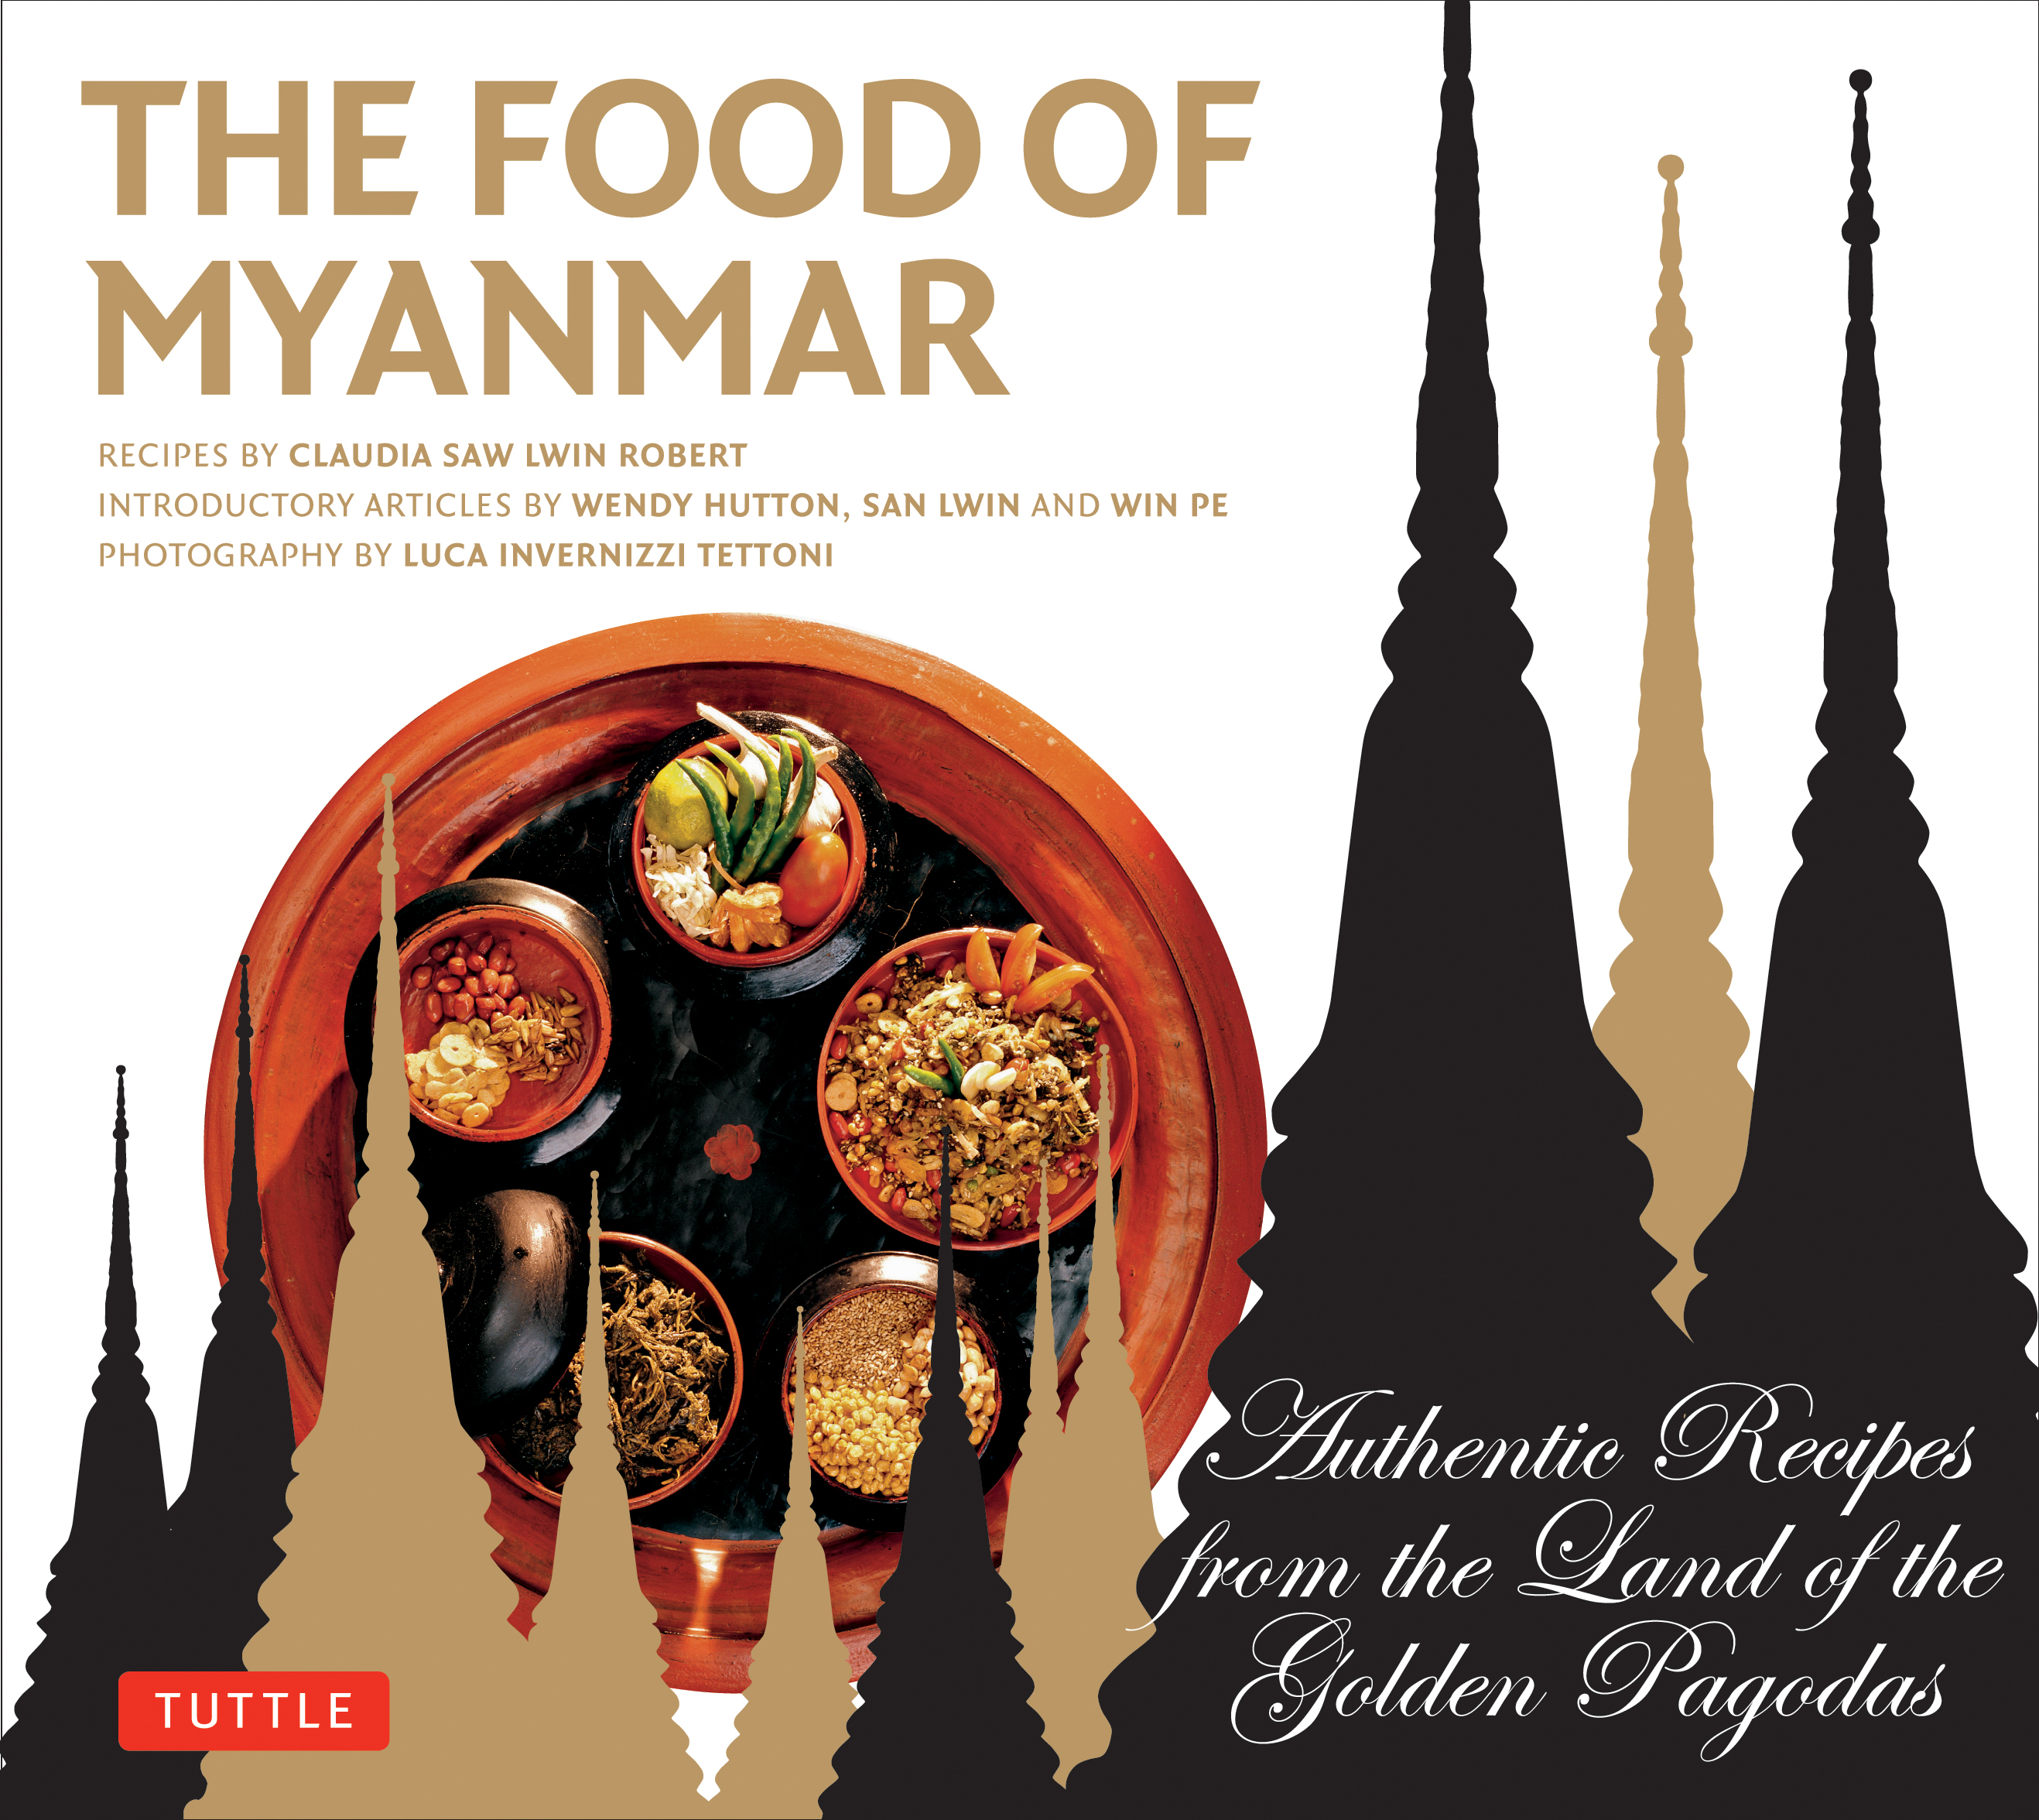 Food-of-myanmar-9780804844000_hr